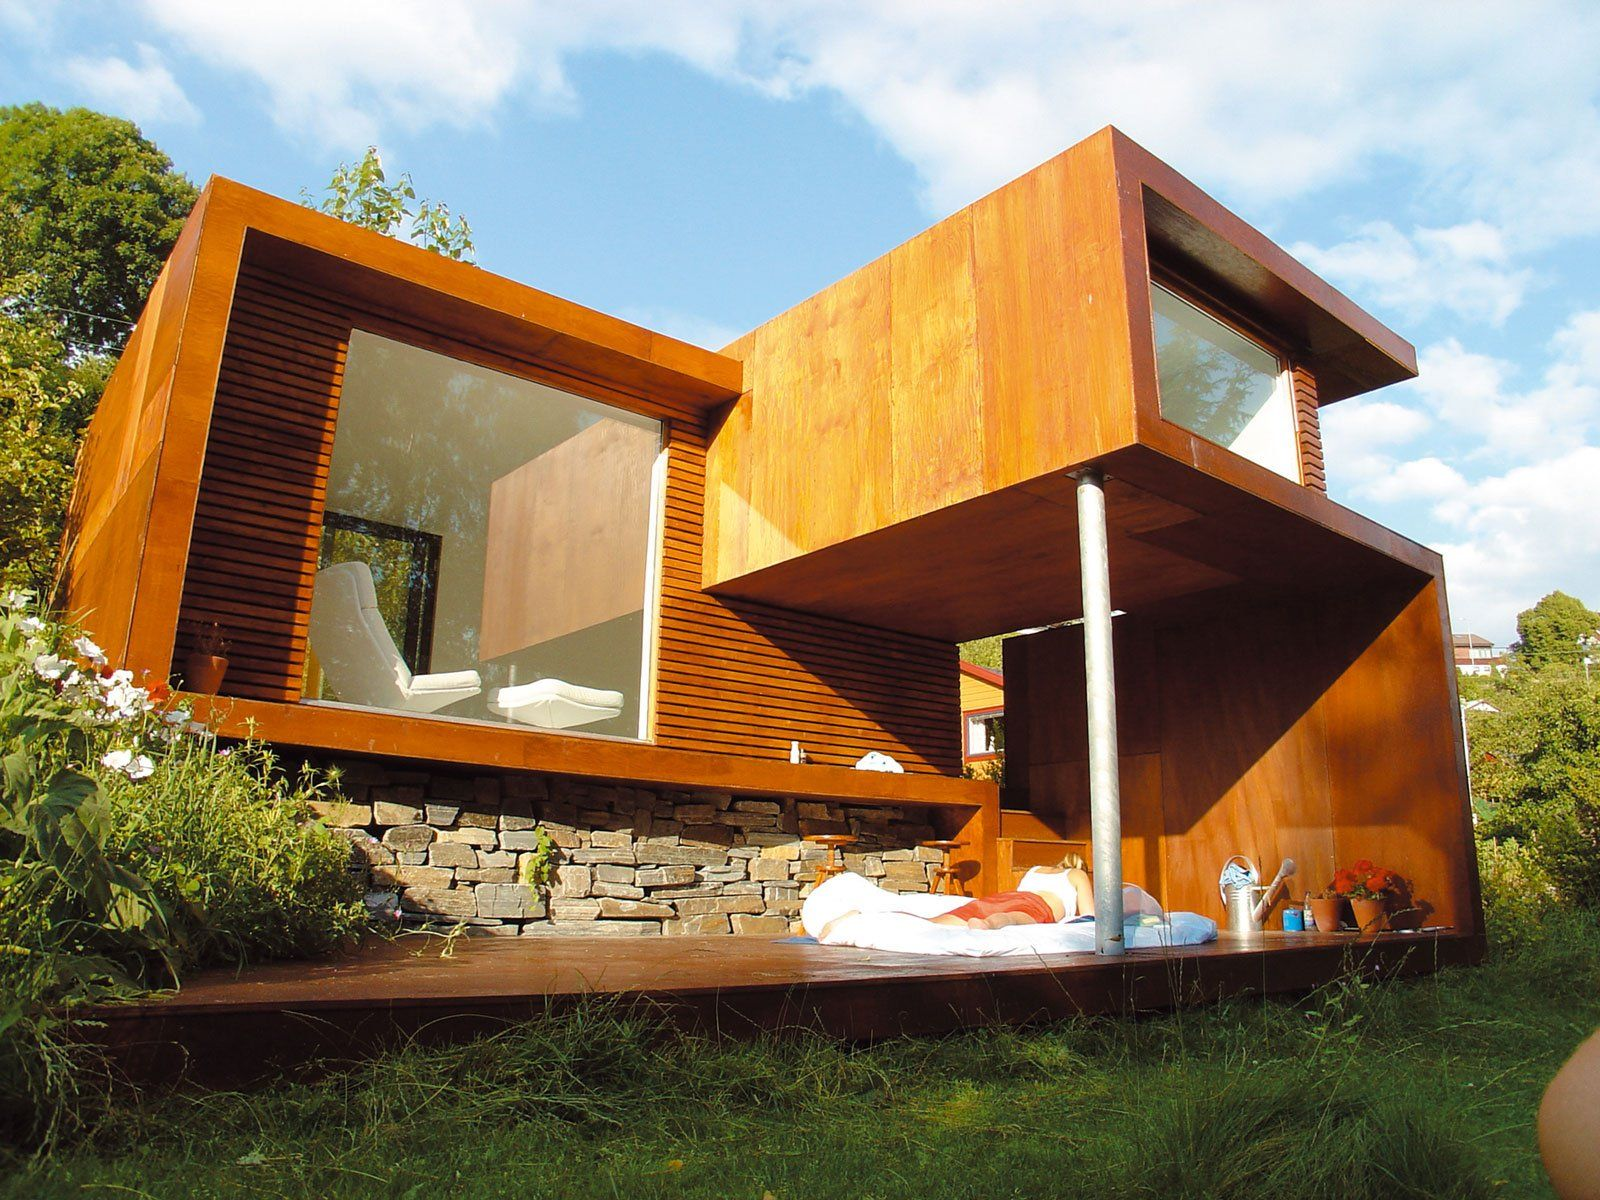 Modenn Natural Design Of The Modern Wooden Villa That Has Excerpt     Modenn Natural Design Of The Modern Wooden Villa That Has Excerpt Wood And  Stone  home decorator  home decorators coupon code  owl home decor  discount  home